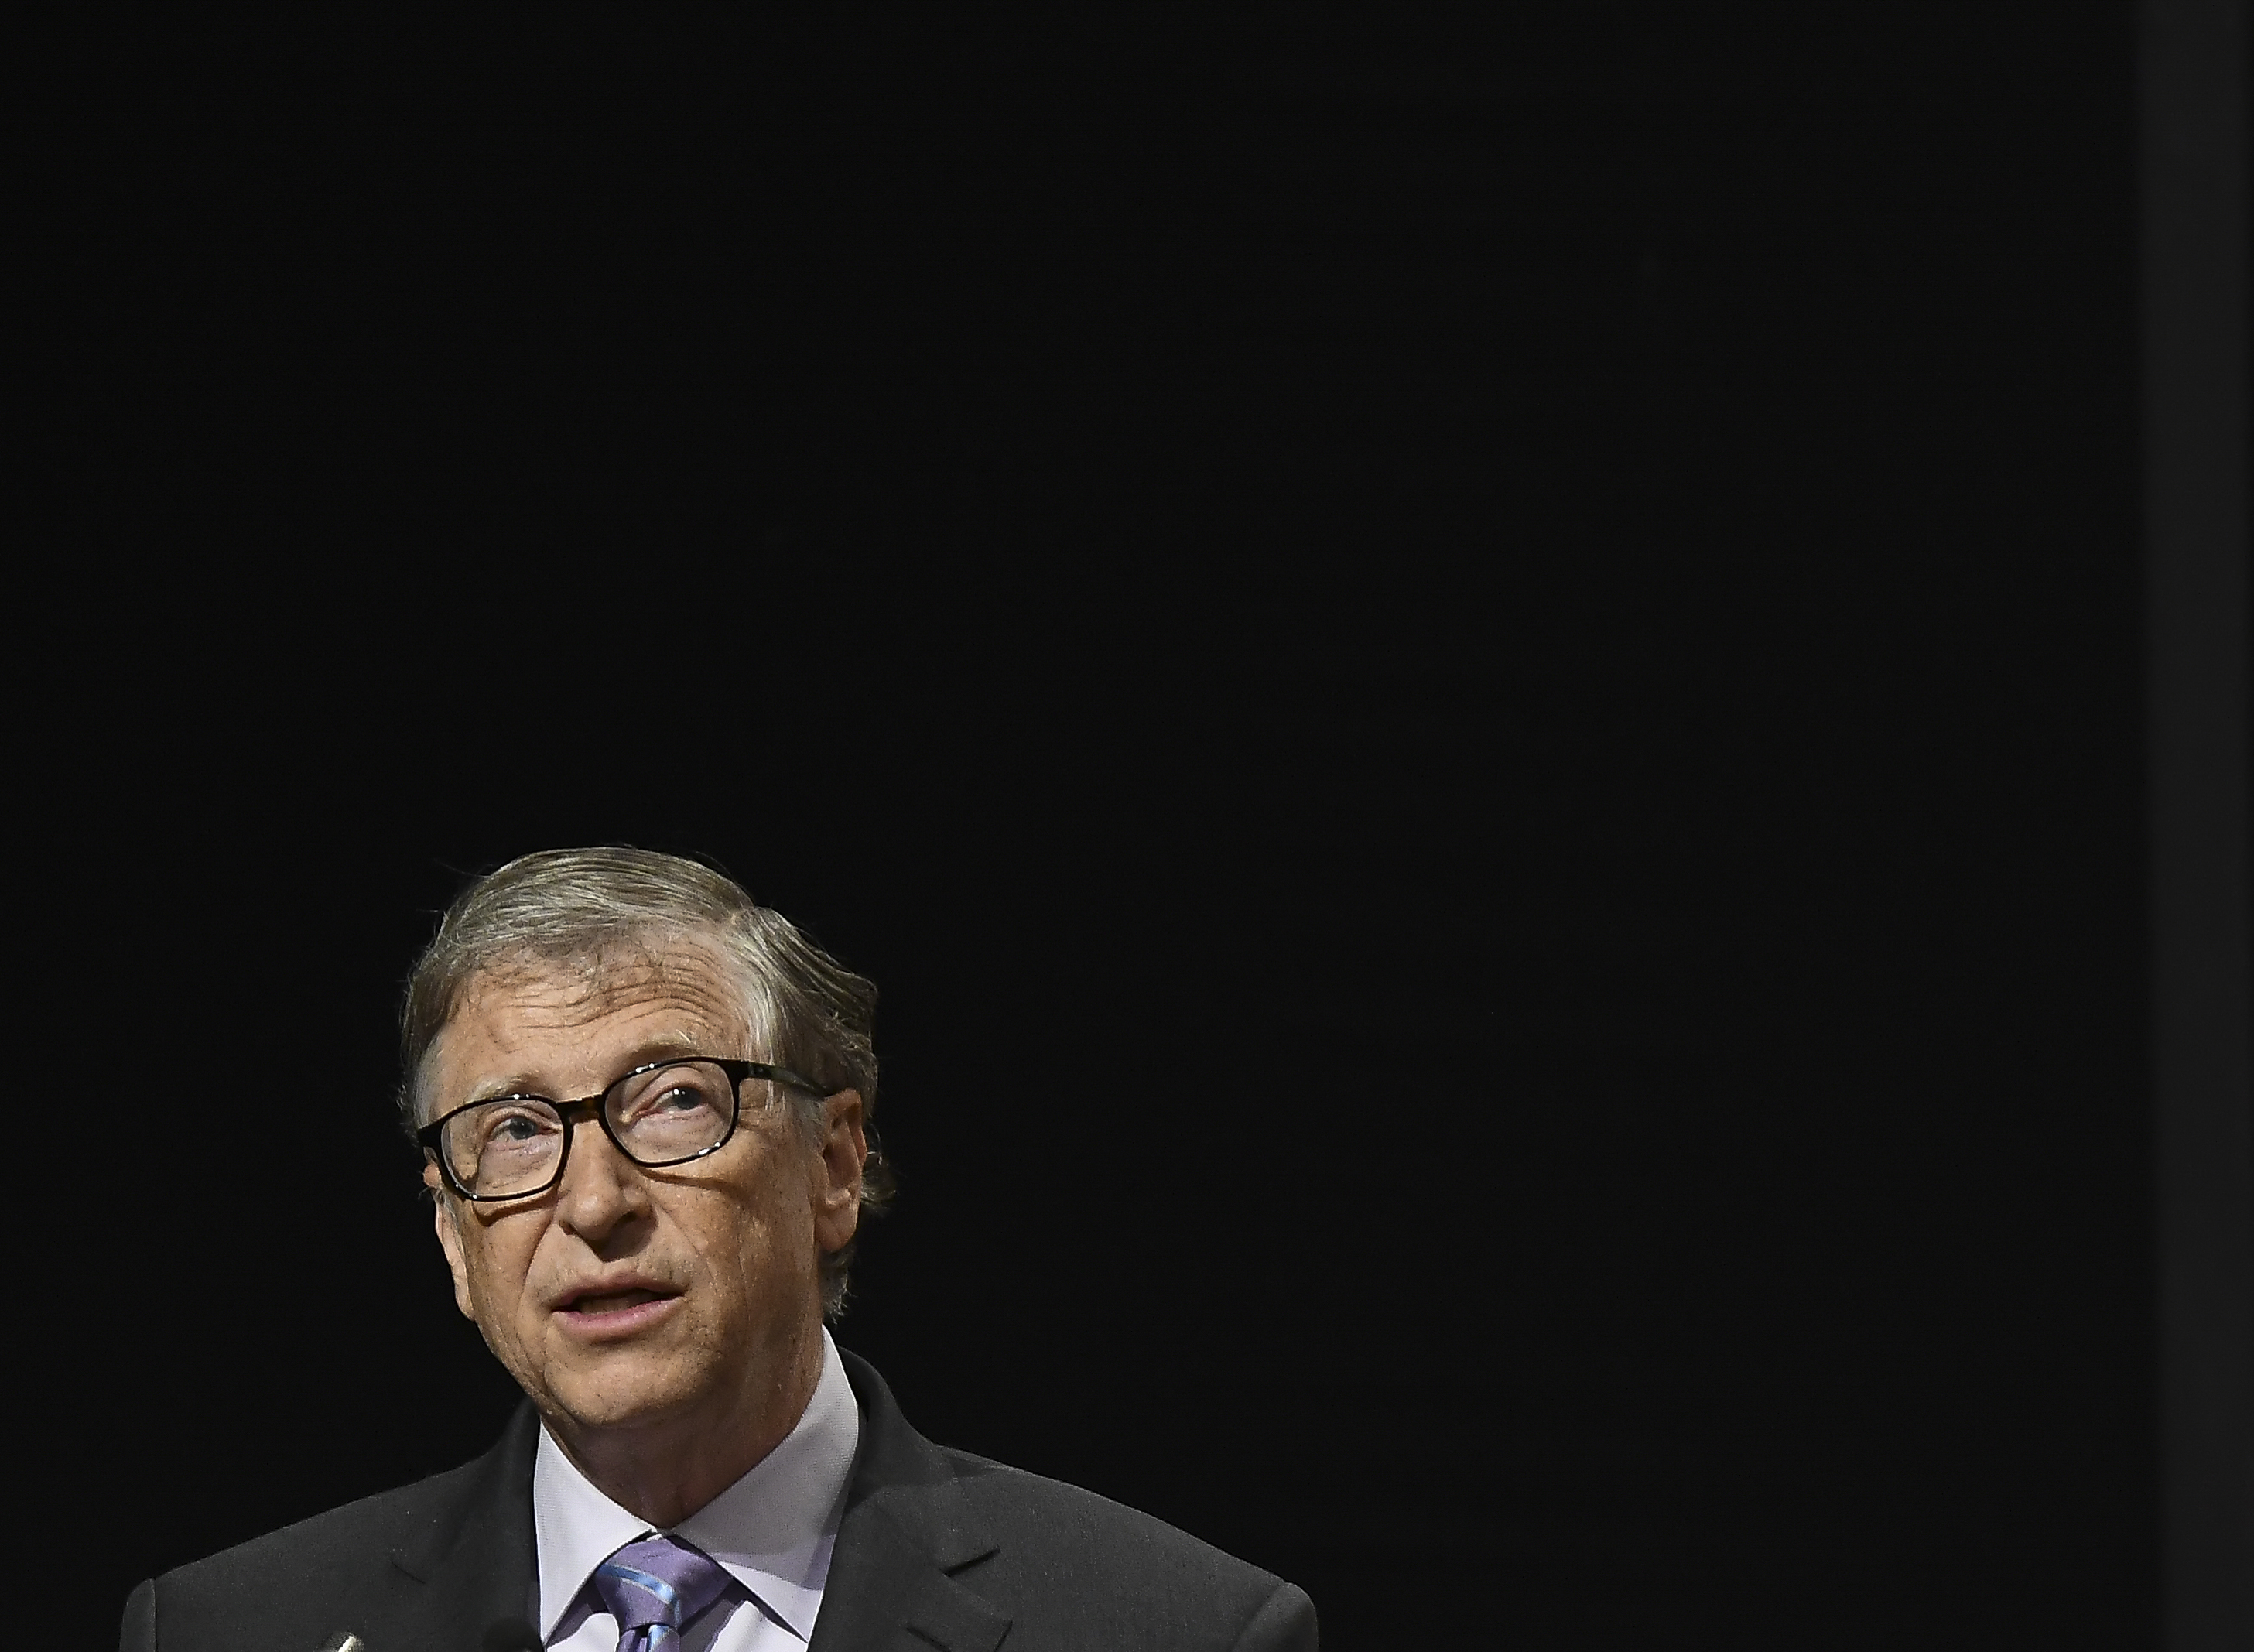 Co-chair and Trustee of the Bill and Melinda Gates Foundation, Bill Gates, speaks to the gathering during the inauguration of the 8th International Conference on Agriculture Statistics in New Delhi, India on 18 November 2019. (Photo by Indraneel Chowdhury/NurPhoto via Getty Images)